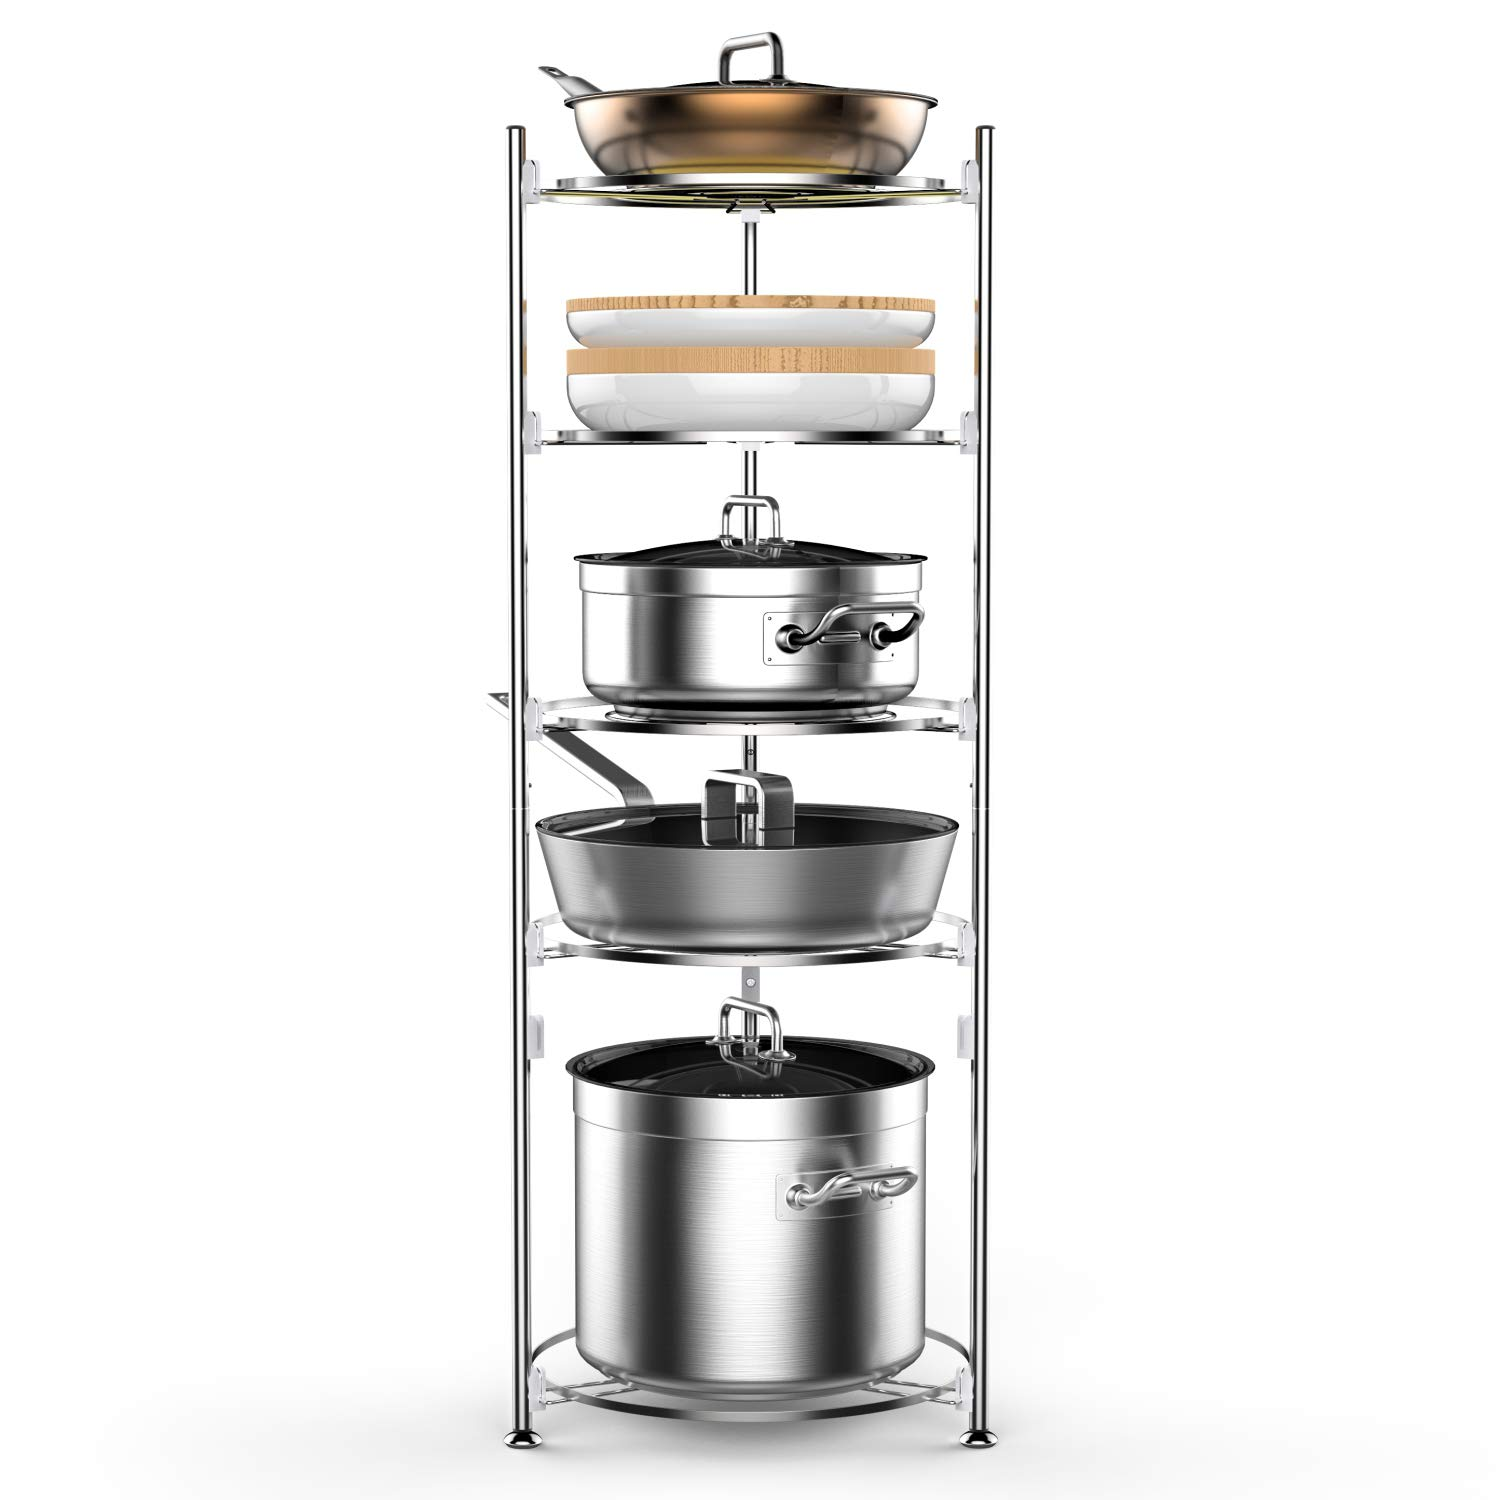 Pot and Pan Organizer, Lifinity 5-Tier Pot Rack Heavy Duty Cookware Stand for Kitchen Organization and Storage Free-Standing Kitchen Organizer for Pot and Pan, Stainless Steel (38.6''Tall)